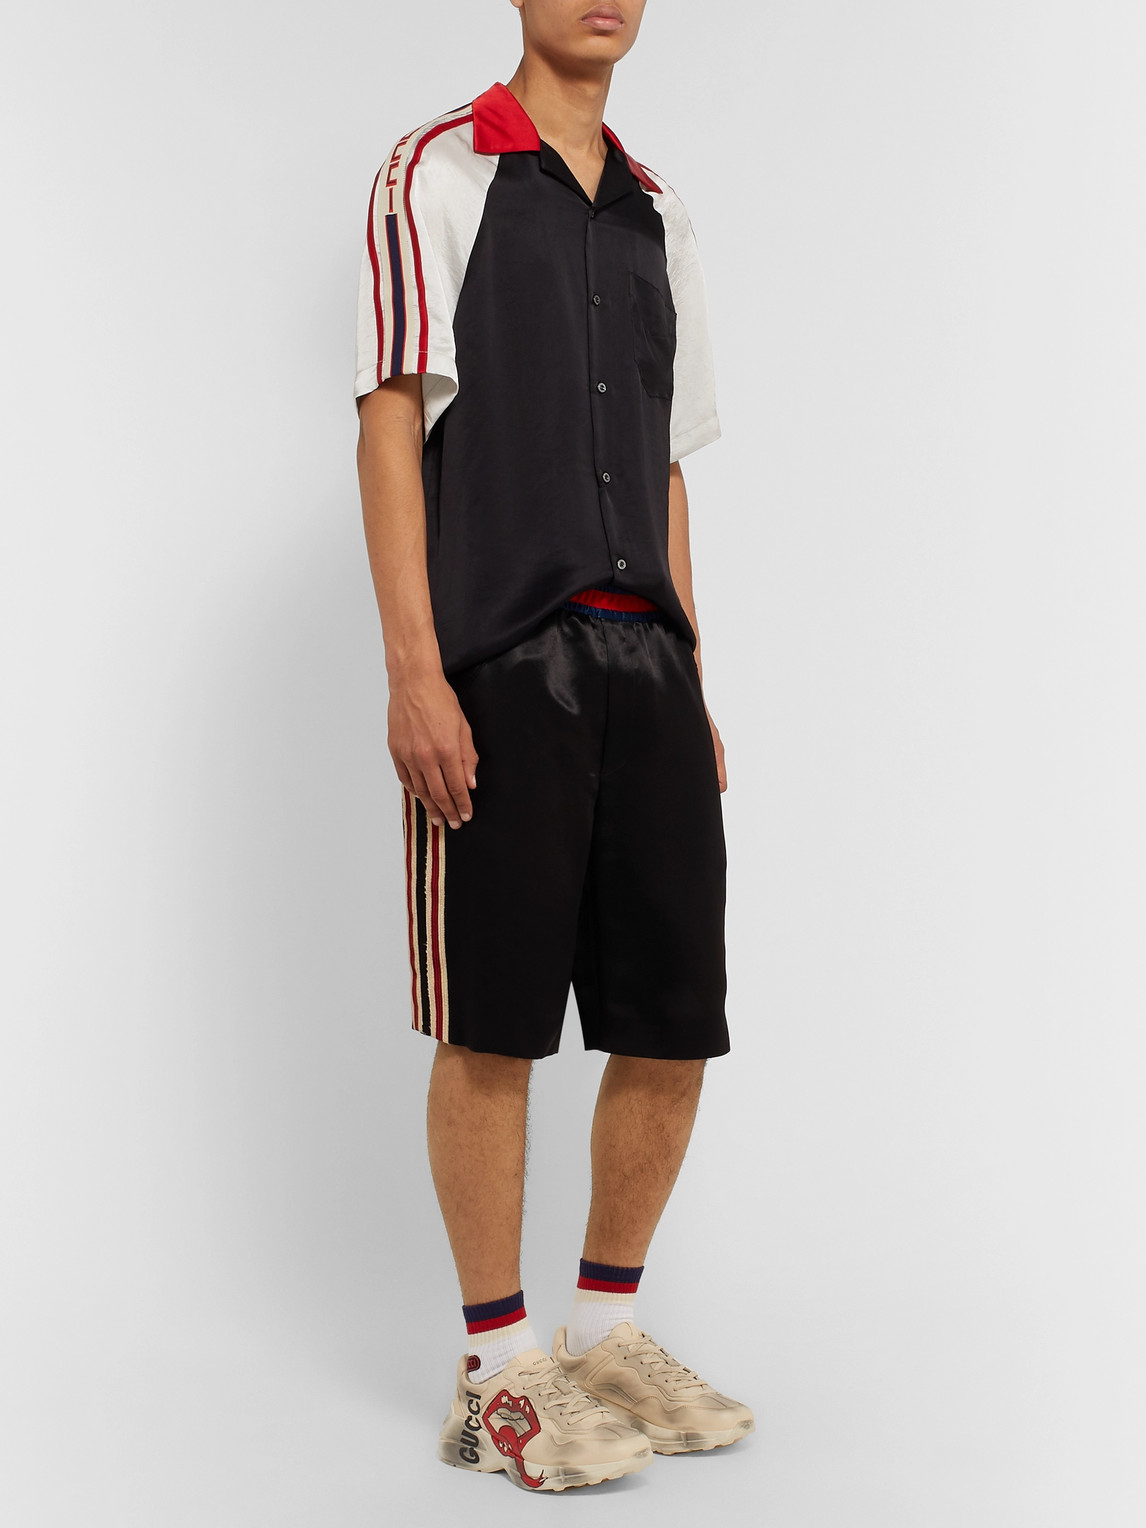 Gucci Shorts WIDE-LEG WEBBING-TRIMMED EMBROIDERED SATIN SHORTS